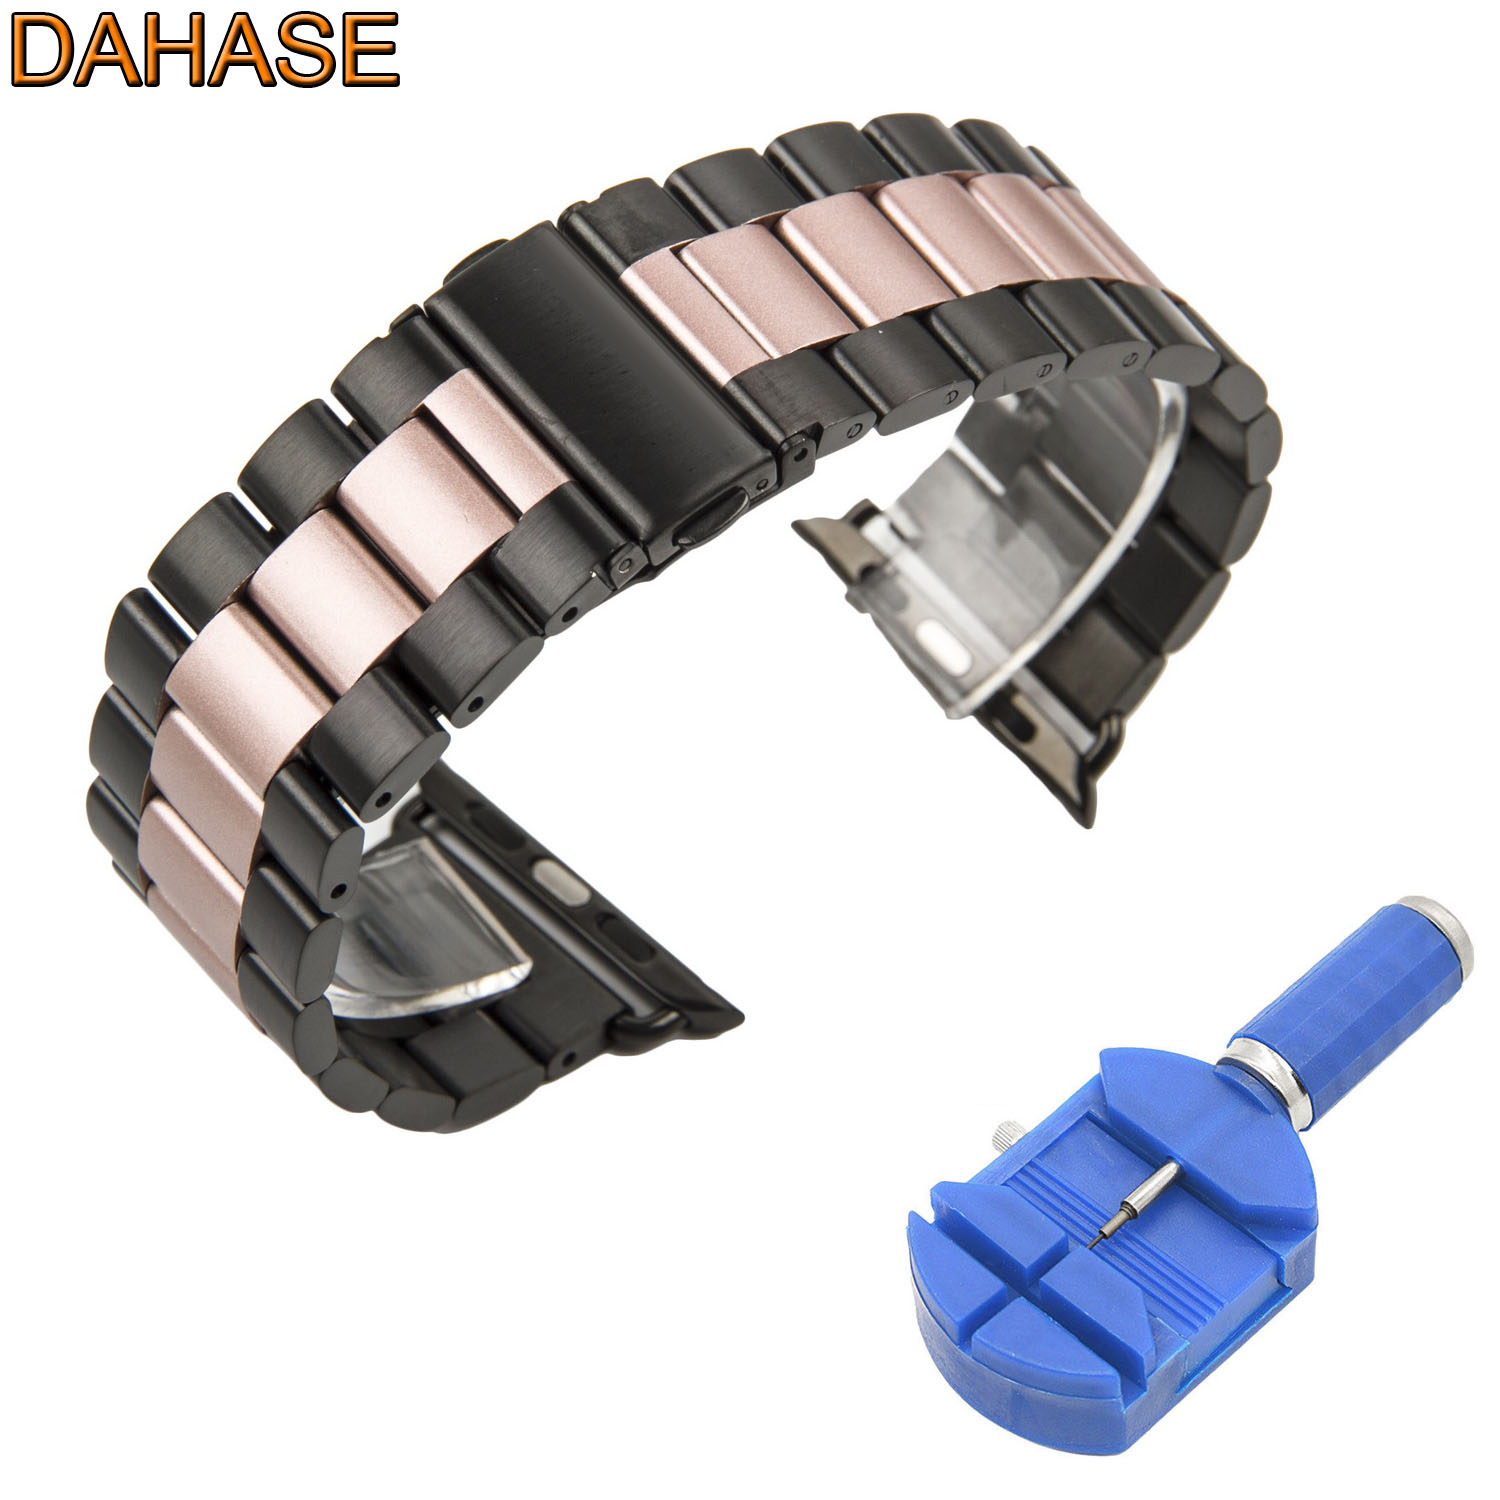 DAHASE Black Rose Stainless Steel Strap for Apple Watch Band for iWatch Series 1 2 3 Metal Watchband with Adapters 38mm 42mm new arrival for apple watch band high quality wooden watchband black brown strap for apple watch band series 3 2 1 42mm 38mm